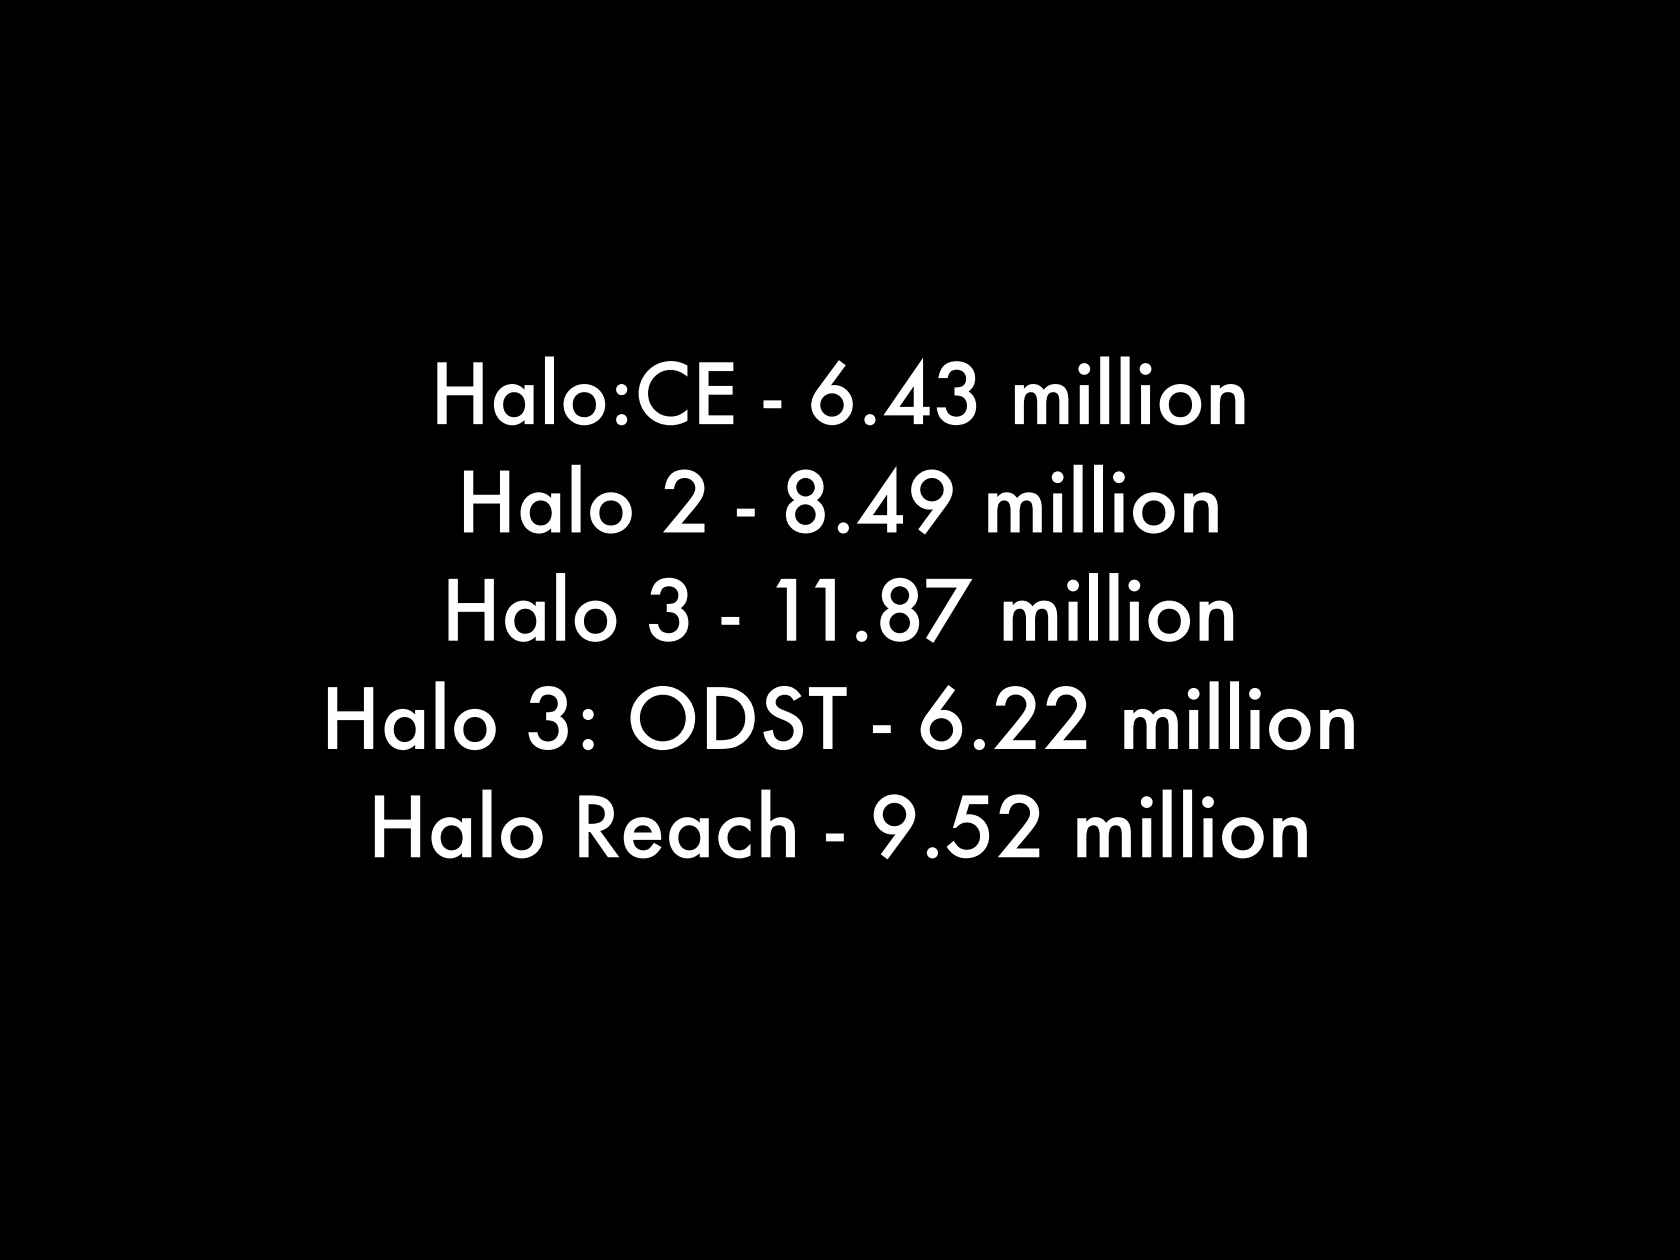 Building the Halo 4 Services with Orleans